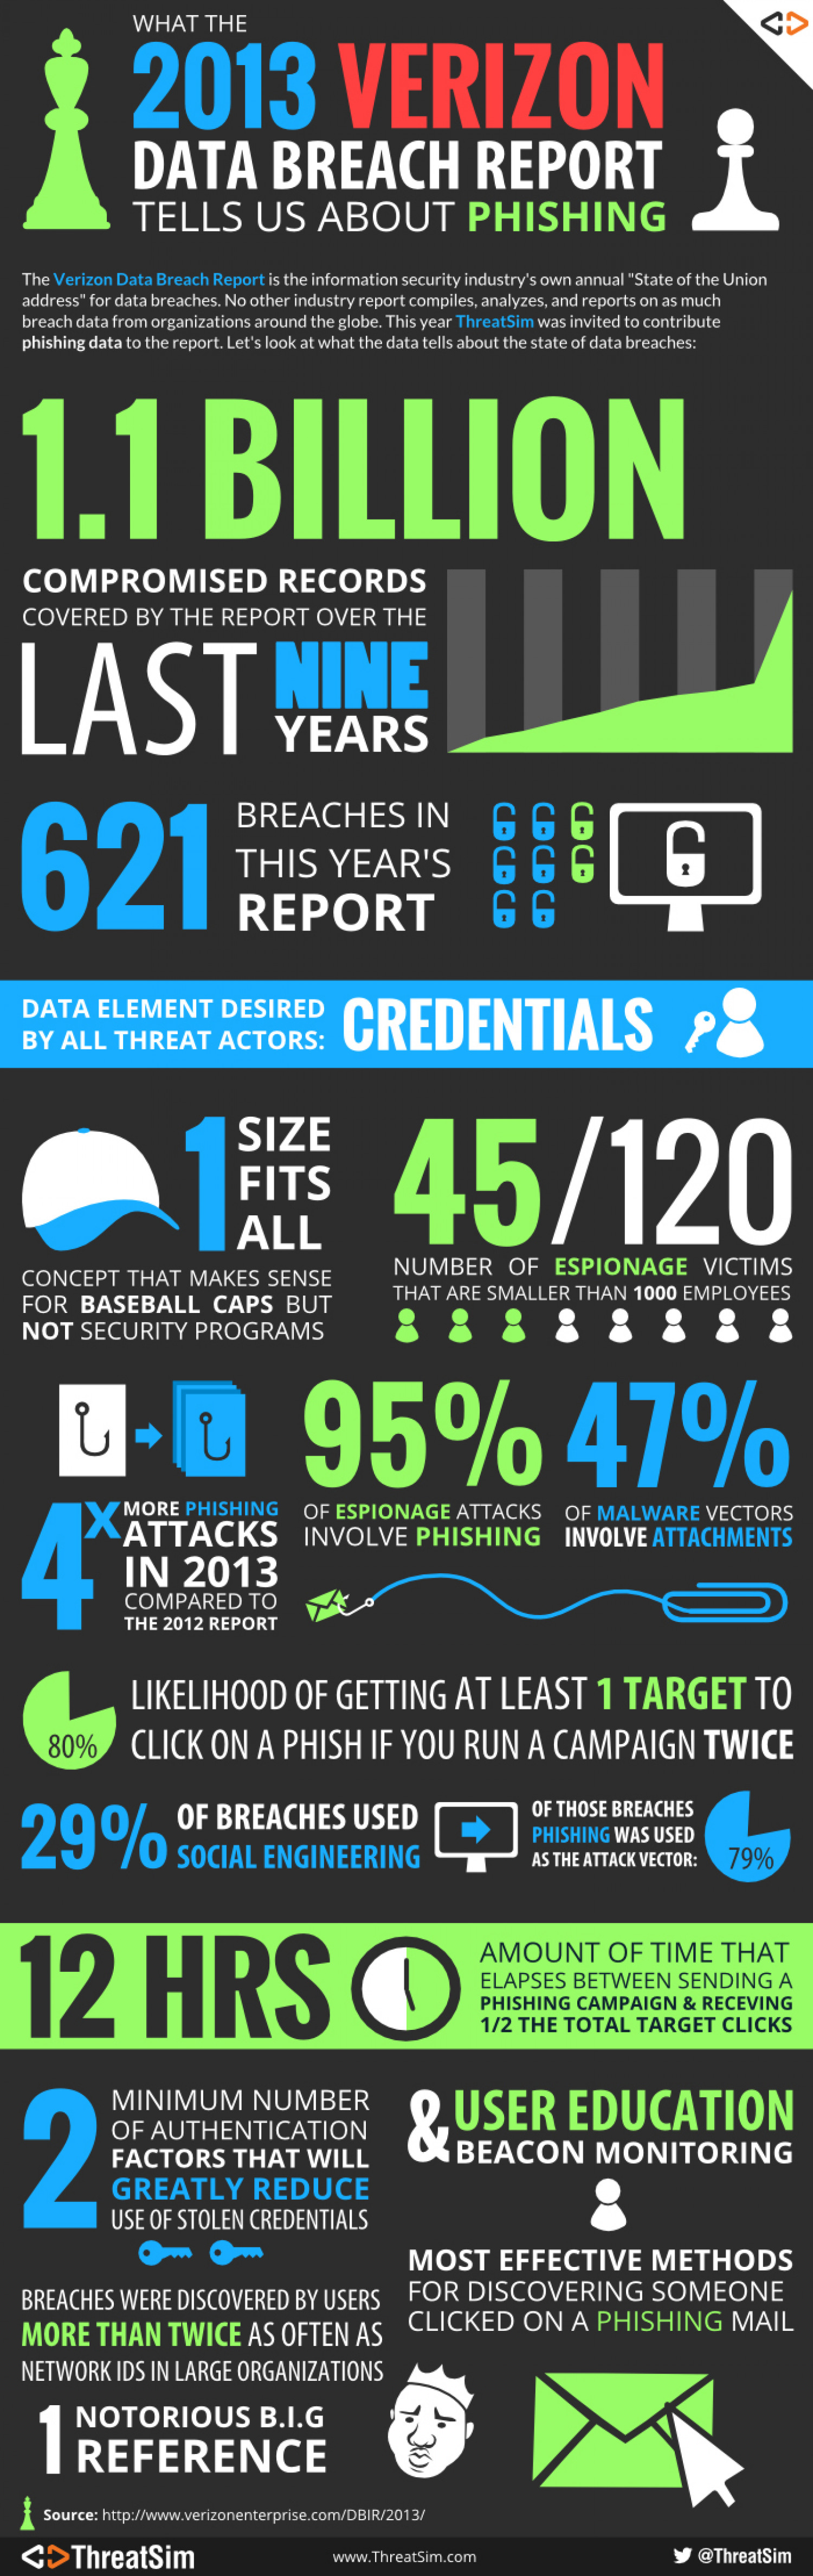 What the 2013 Verizon Data Breach Report tells us about phishing Infographic